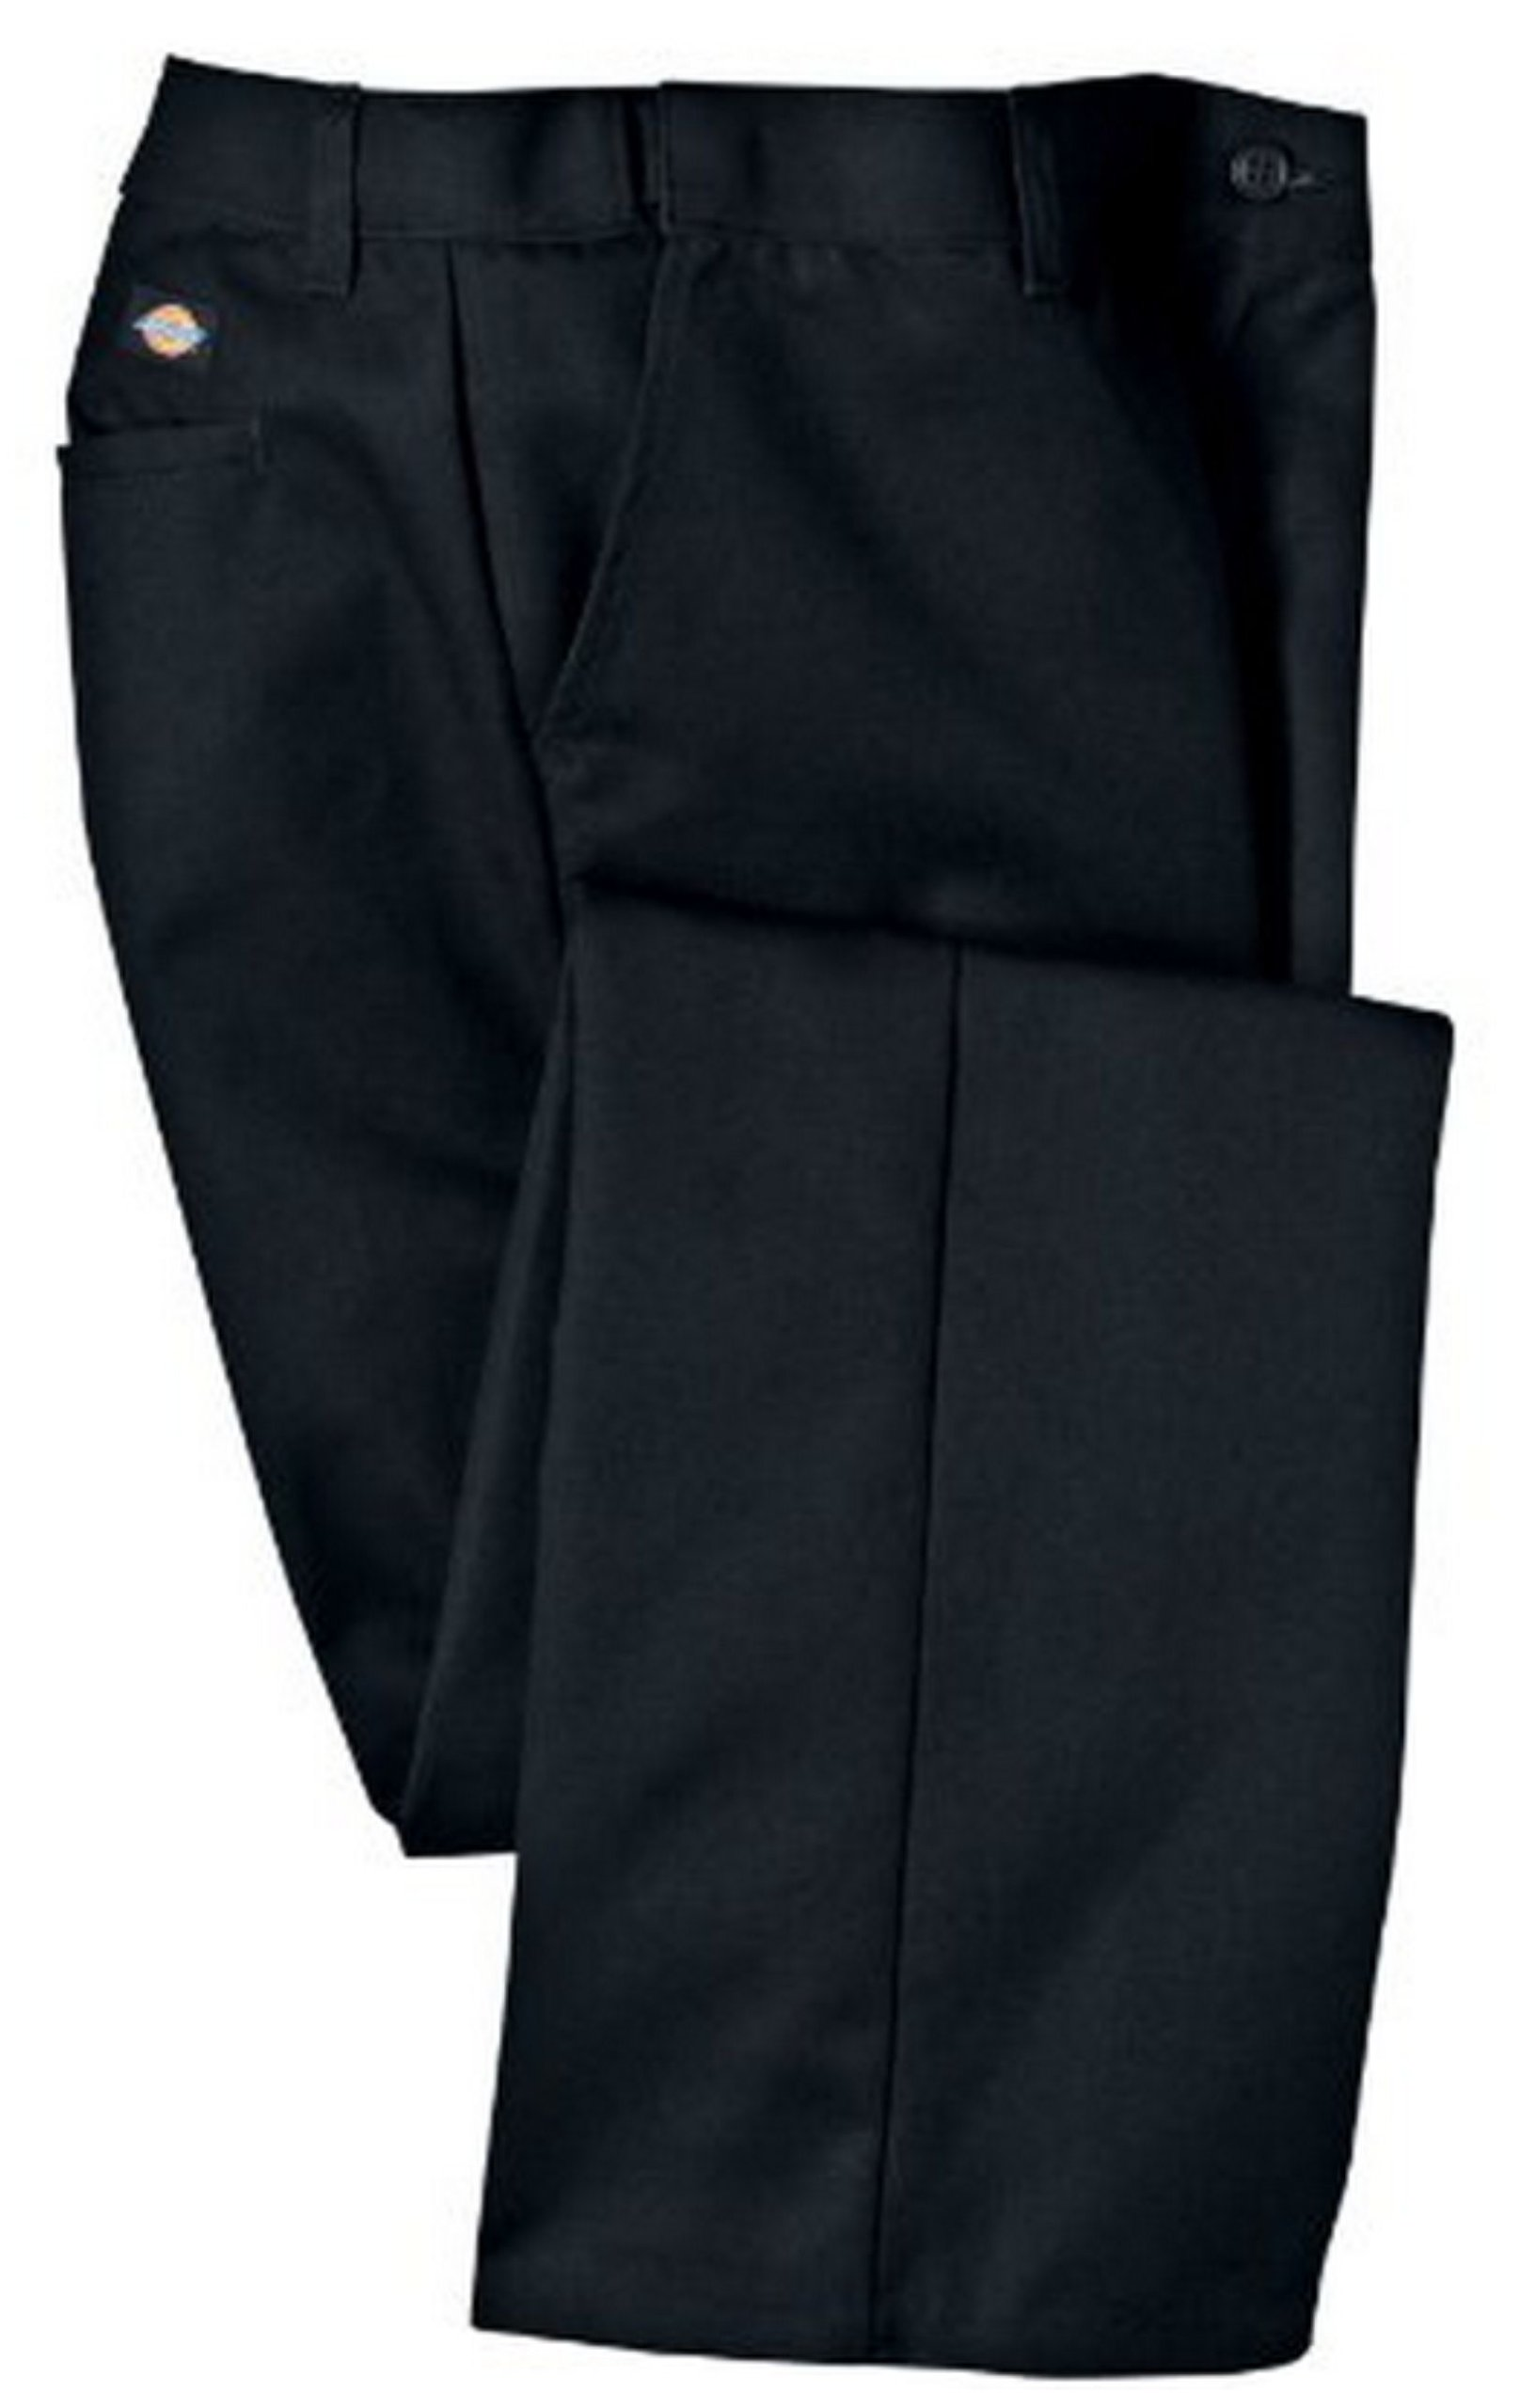 Dickies Occupational Workwear FP325BK 8 P Polyester/ Cotton Relaxed Fit Women's Industrial Comfort Waist Flat Front Pant with Straight Leg, 8 Petite, 28'' Inseam, Black